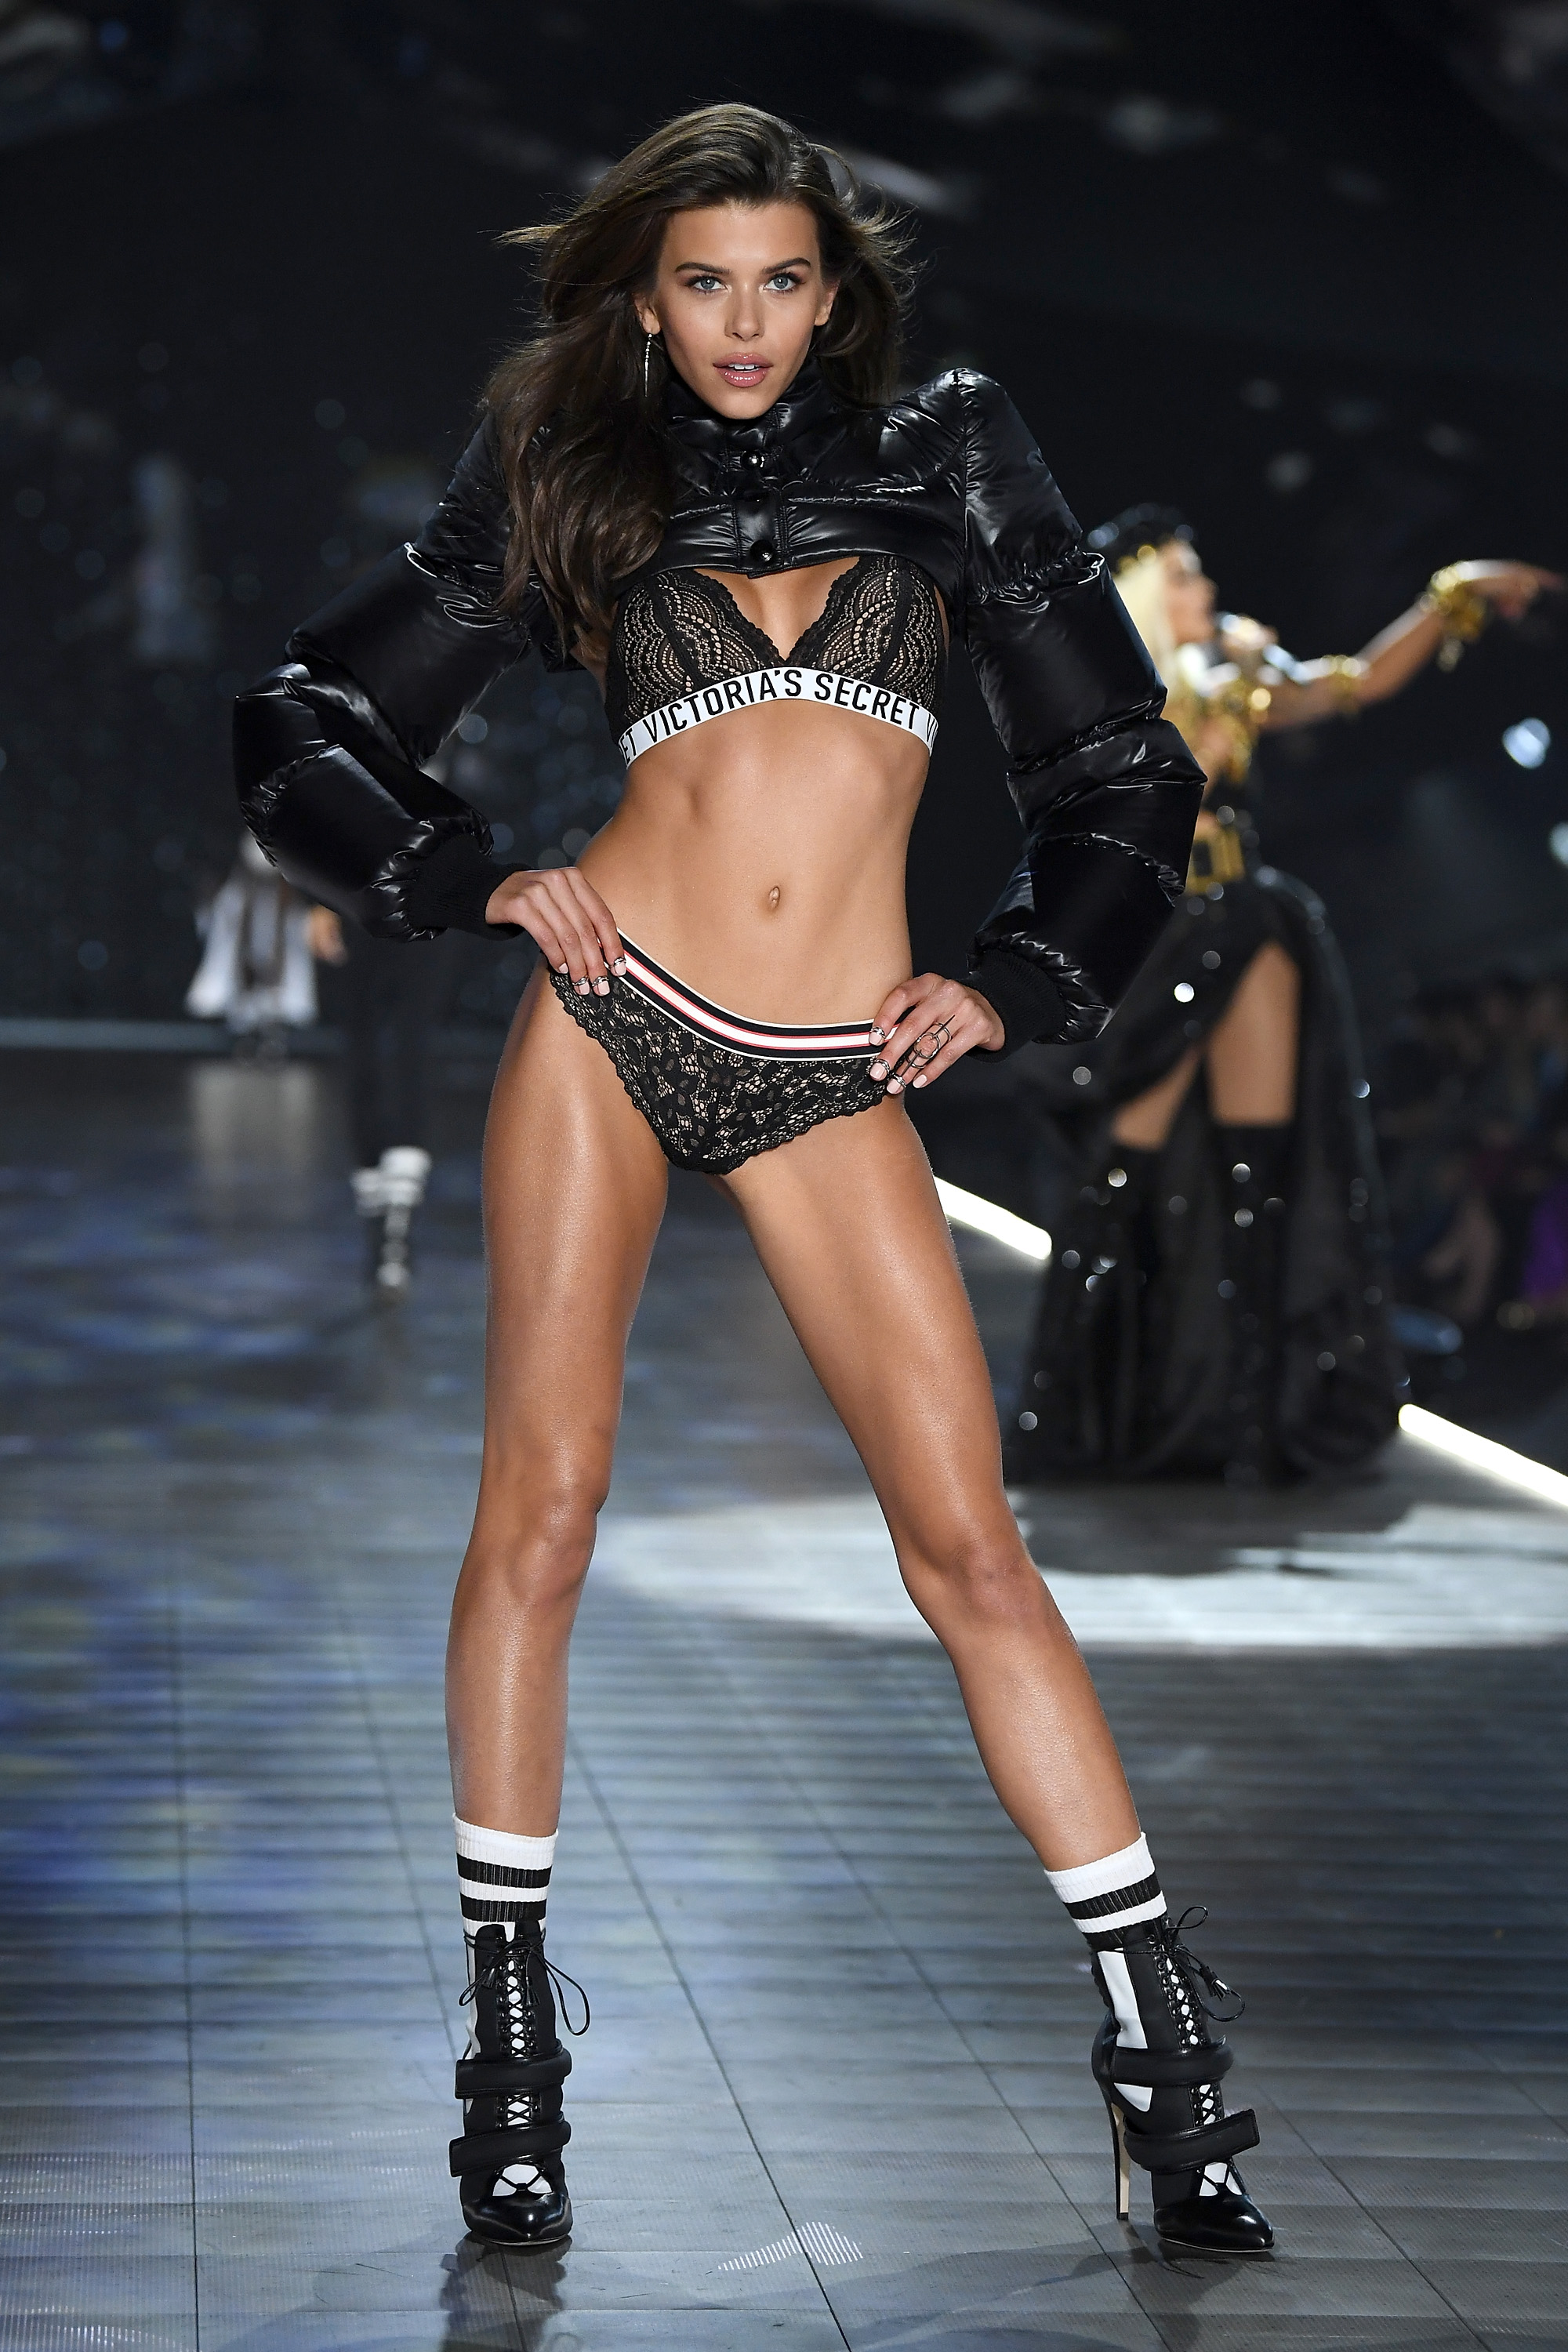 Georgia Fowler walks the runway during the 2018 Victoria's Secret Fashion Show at Pier 94 on November 8, 2018, in New York City. (Getty Images)